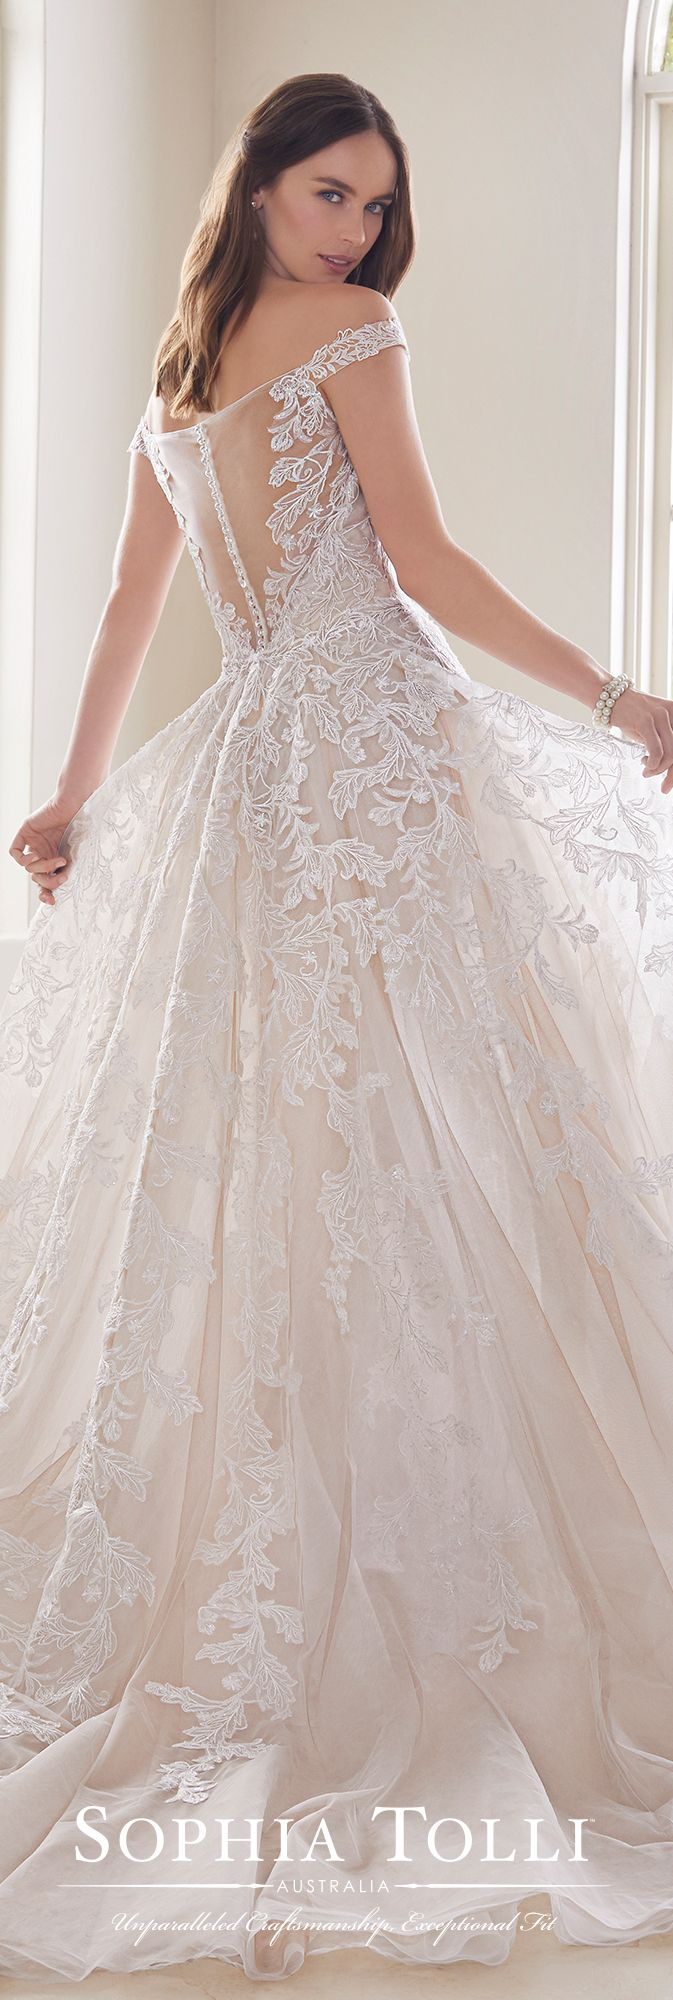 Lace wedding dress for short person january 2019 Breathtaking OffShoulder TwoPiece Wedding Dress Set  My Future